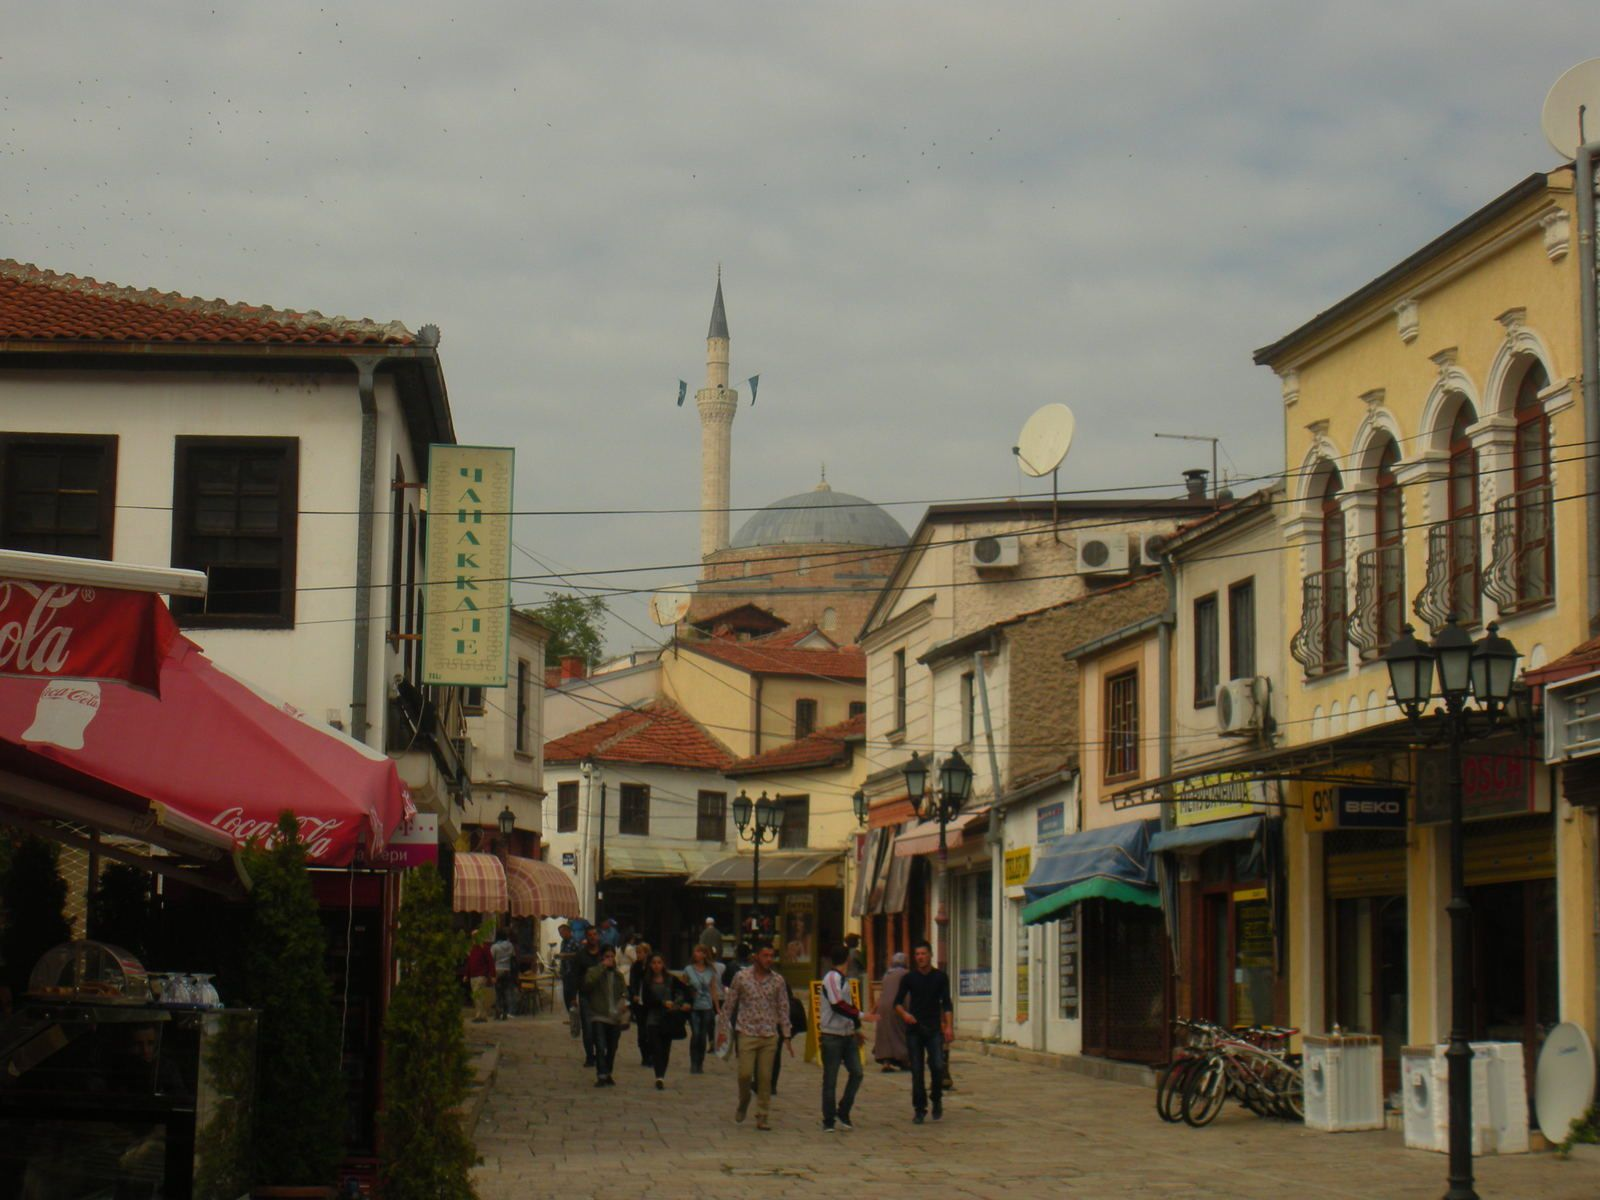 The Balkans is a region with a rich history not only for the recent war in the ´90s but also for the Roman , Ottoman, Austro-Hungarian, Slav, Greek, Illyrian empires... A rich culture in a crossroad area with diversity in religion, ethnics that got in flame when Yugoslavia started to fall apart (only Slovenia and Macedonia became independent peacefully, the creation of the other states came after a big massacre of innocent people). It is important not to forget history if we do not want to repeat the same errors again.